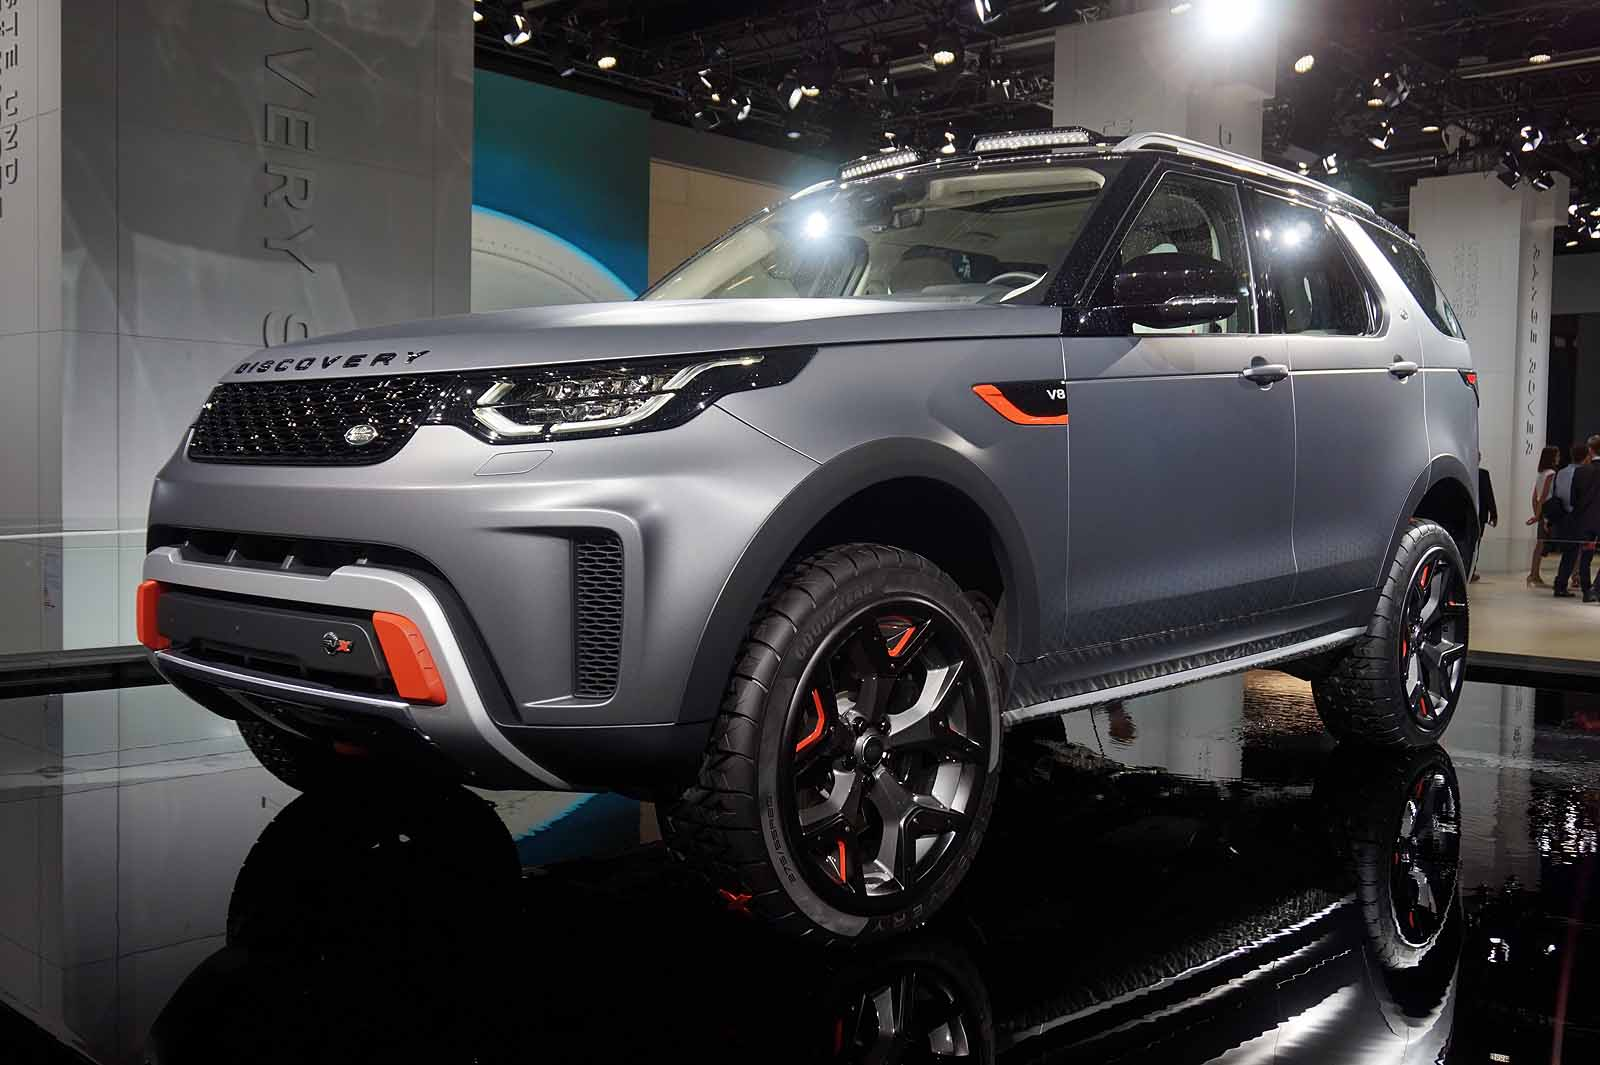 landrover land auto range buy front sport express review rover cornering